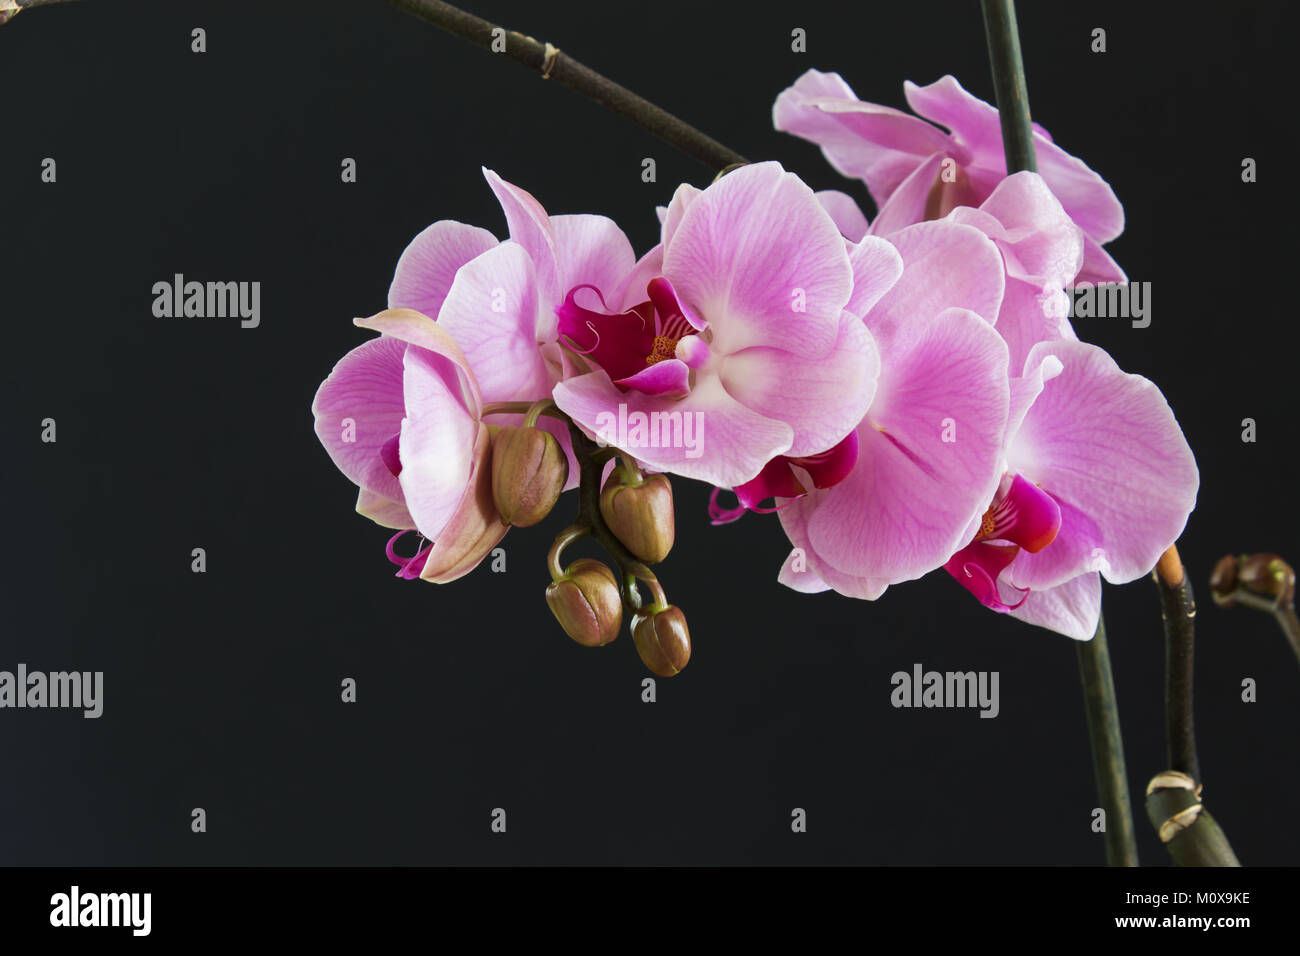 Rare bright pink wild orchid stock photos rare bright pink wild branch with pink flowers and buds of an orchid on a black background stock image mightylinksfo